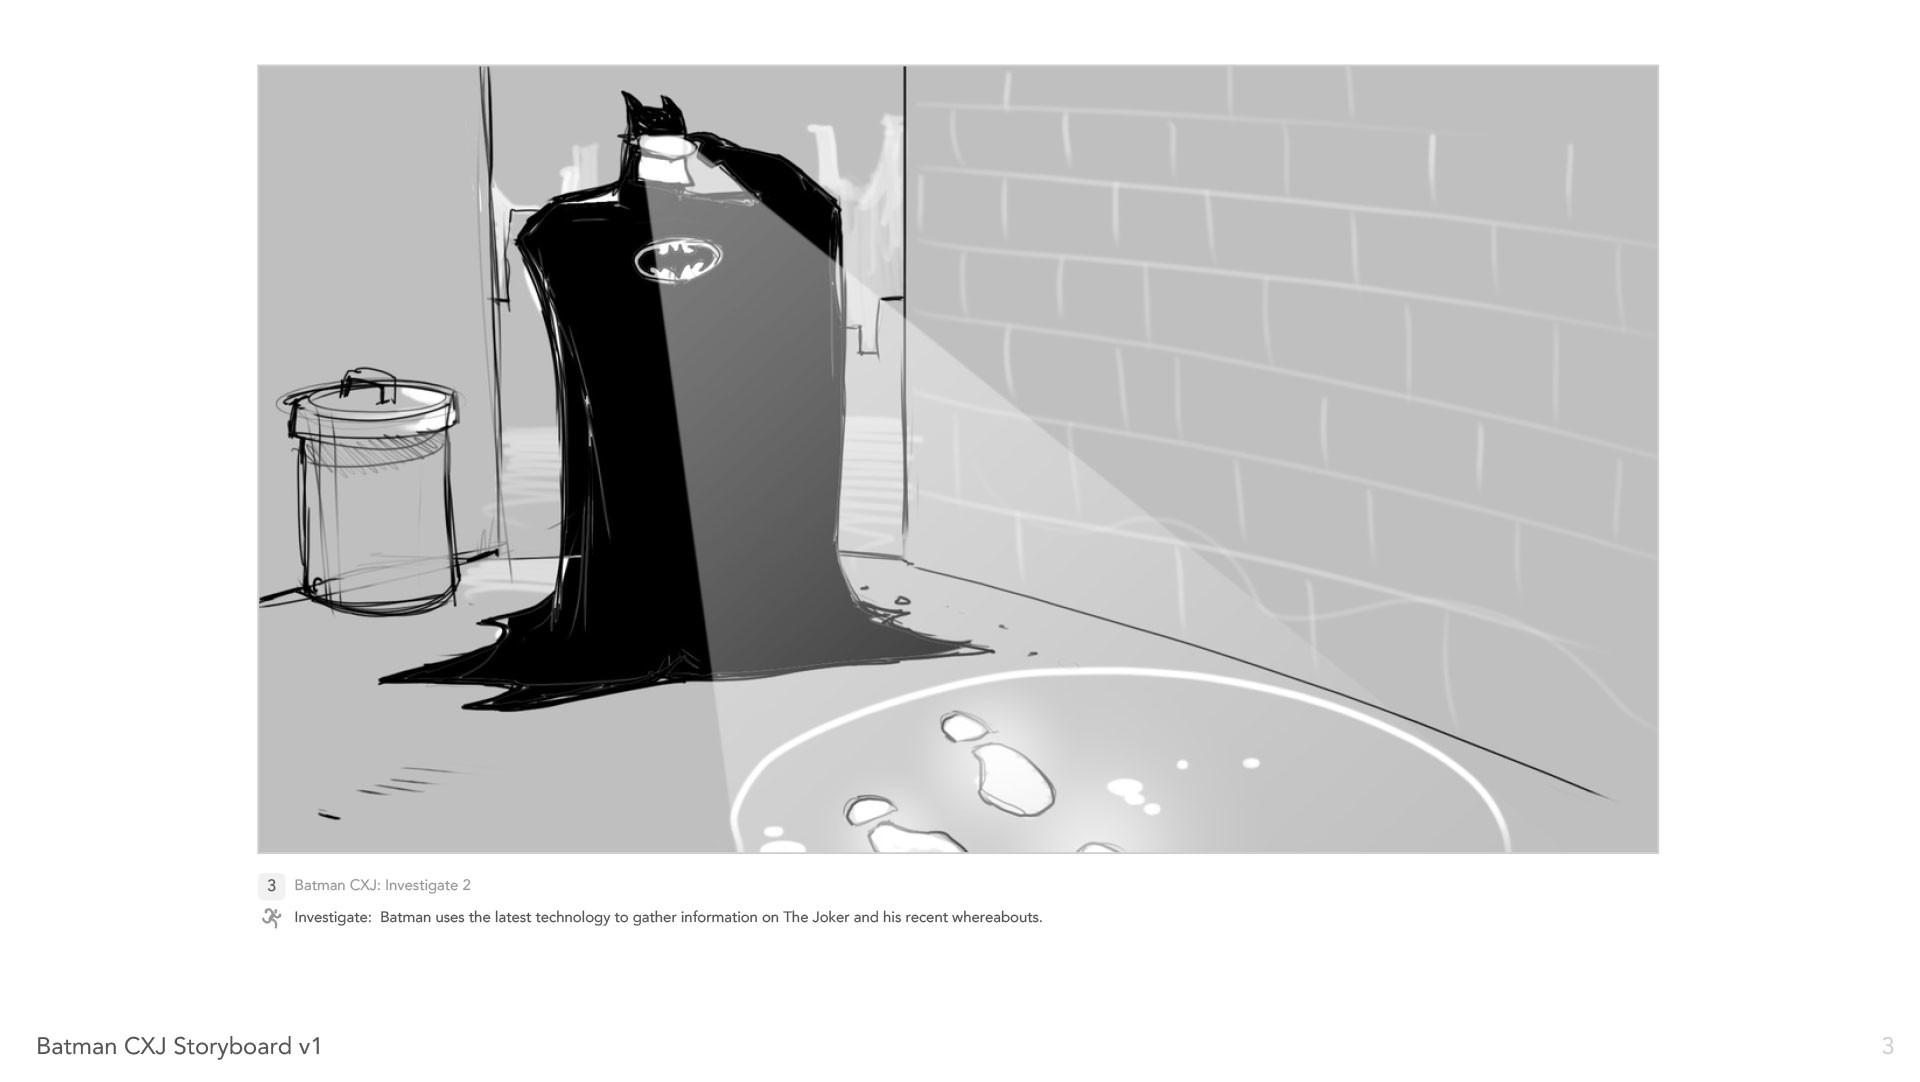 Chx welch batman cxj storyboard v1 4